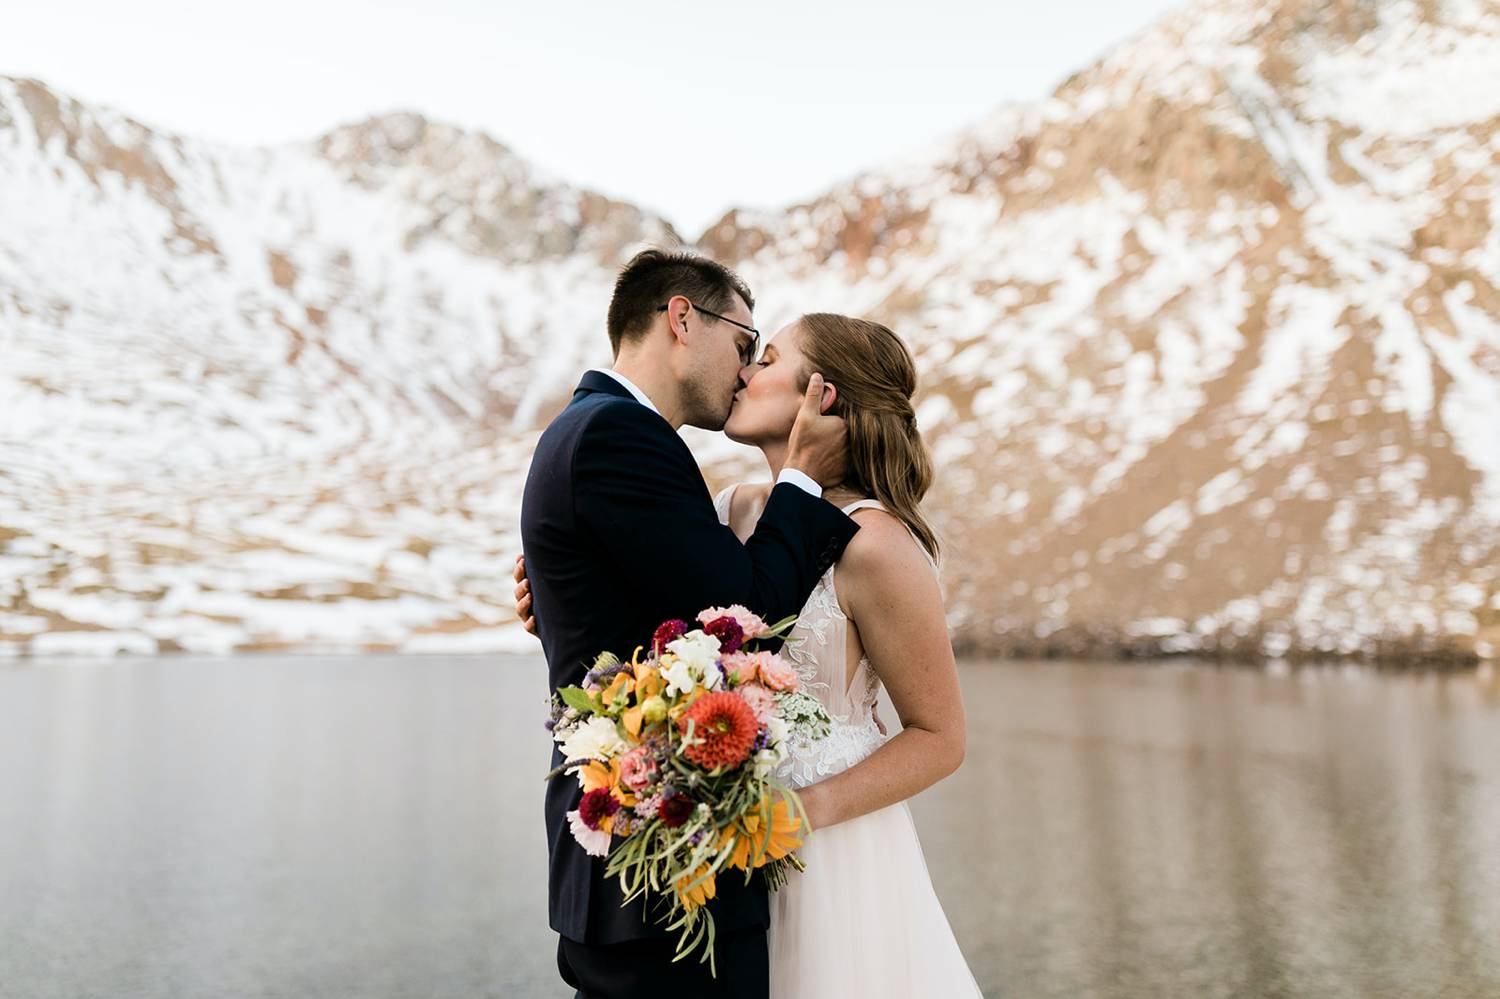 A bride a groom kiss lightly beside a shimmering lake in the shadow of a huge, snow-covered mountain